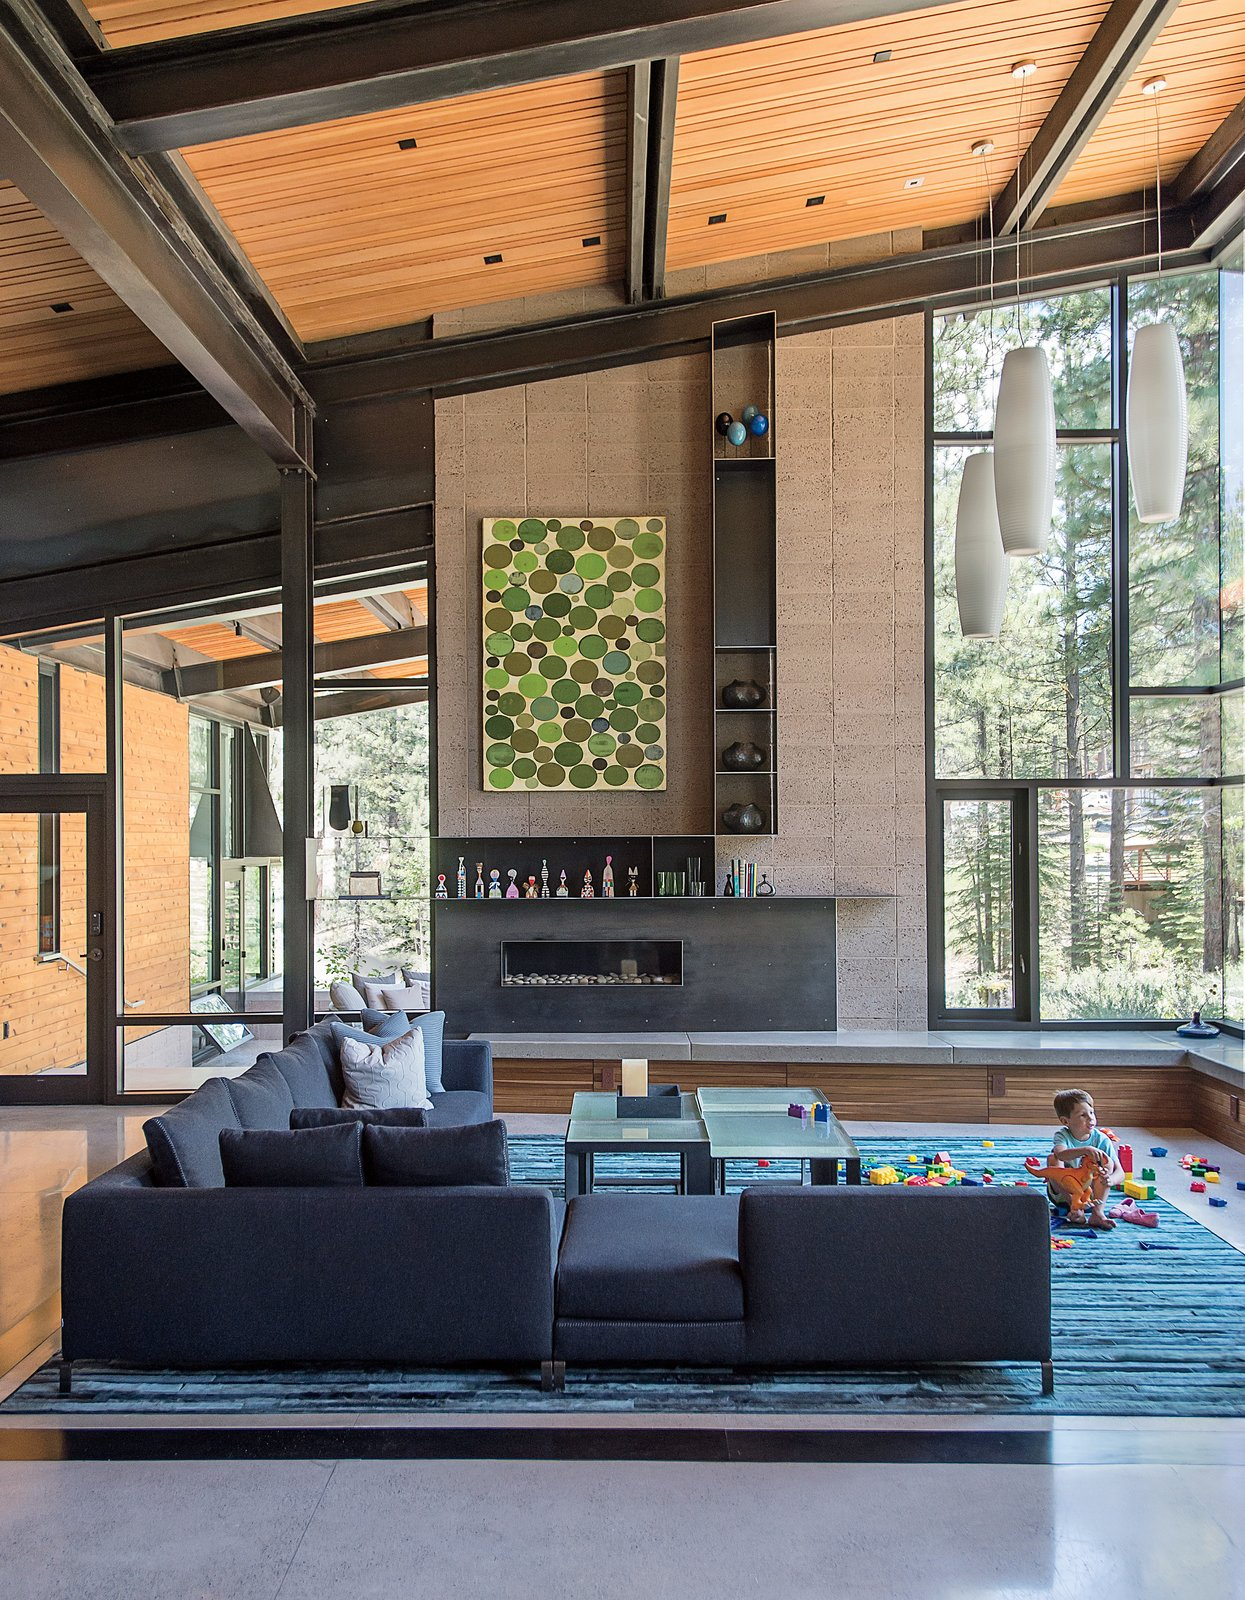 A piece by John Belingheri hangs in the living room of the Bancroft family's home, which is centered by an Antonio Citterio sofa and Robert Marinelli tables.  Photo 1 of 19 in A Forest Sanctuary Designed to Support Autistic Triplets, Their Parents, and a Host of Caregivers